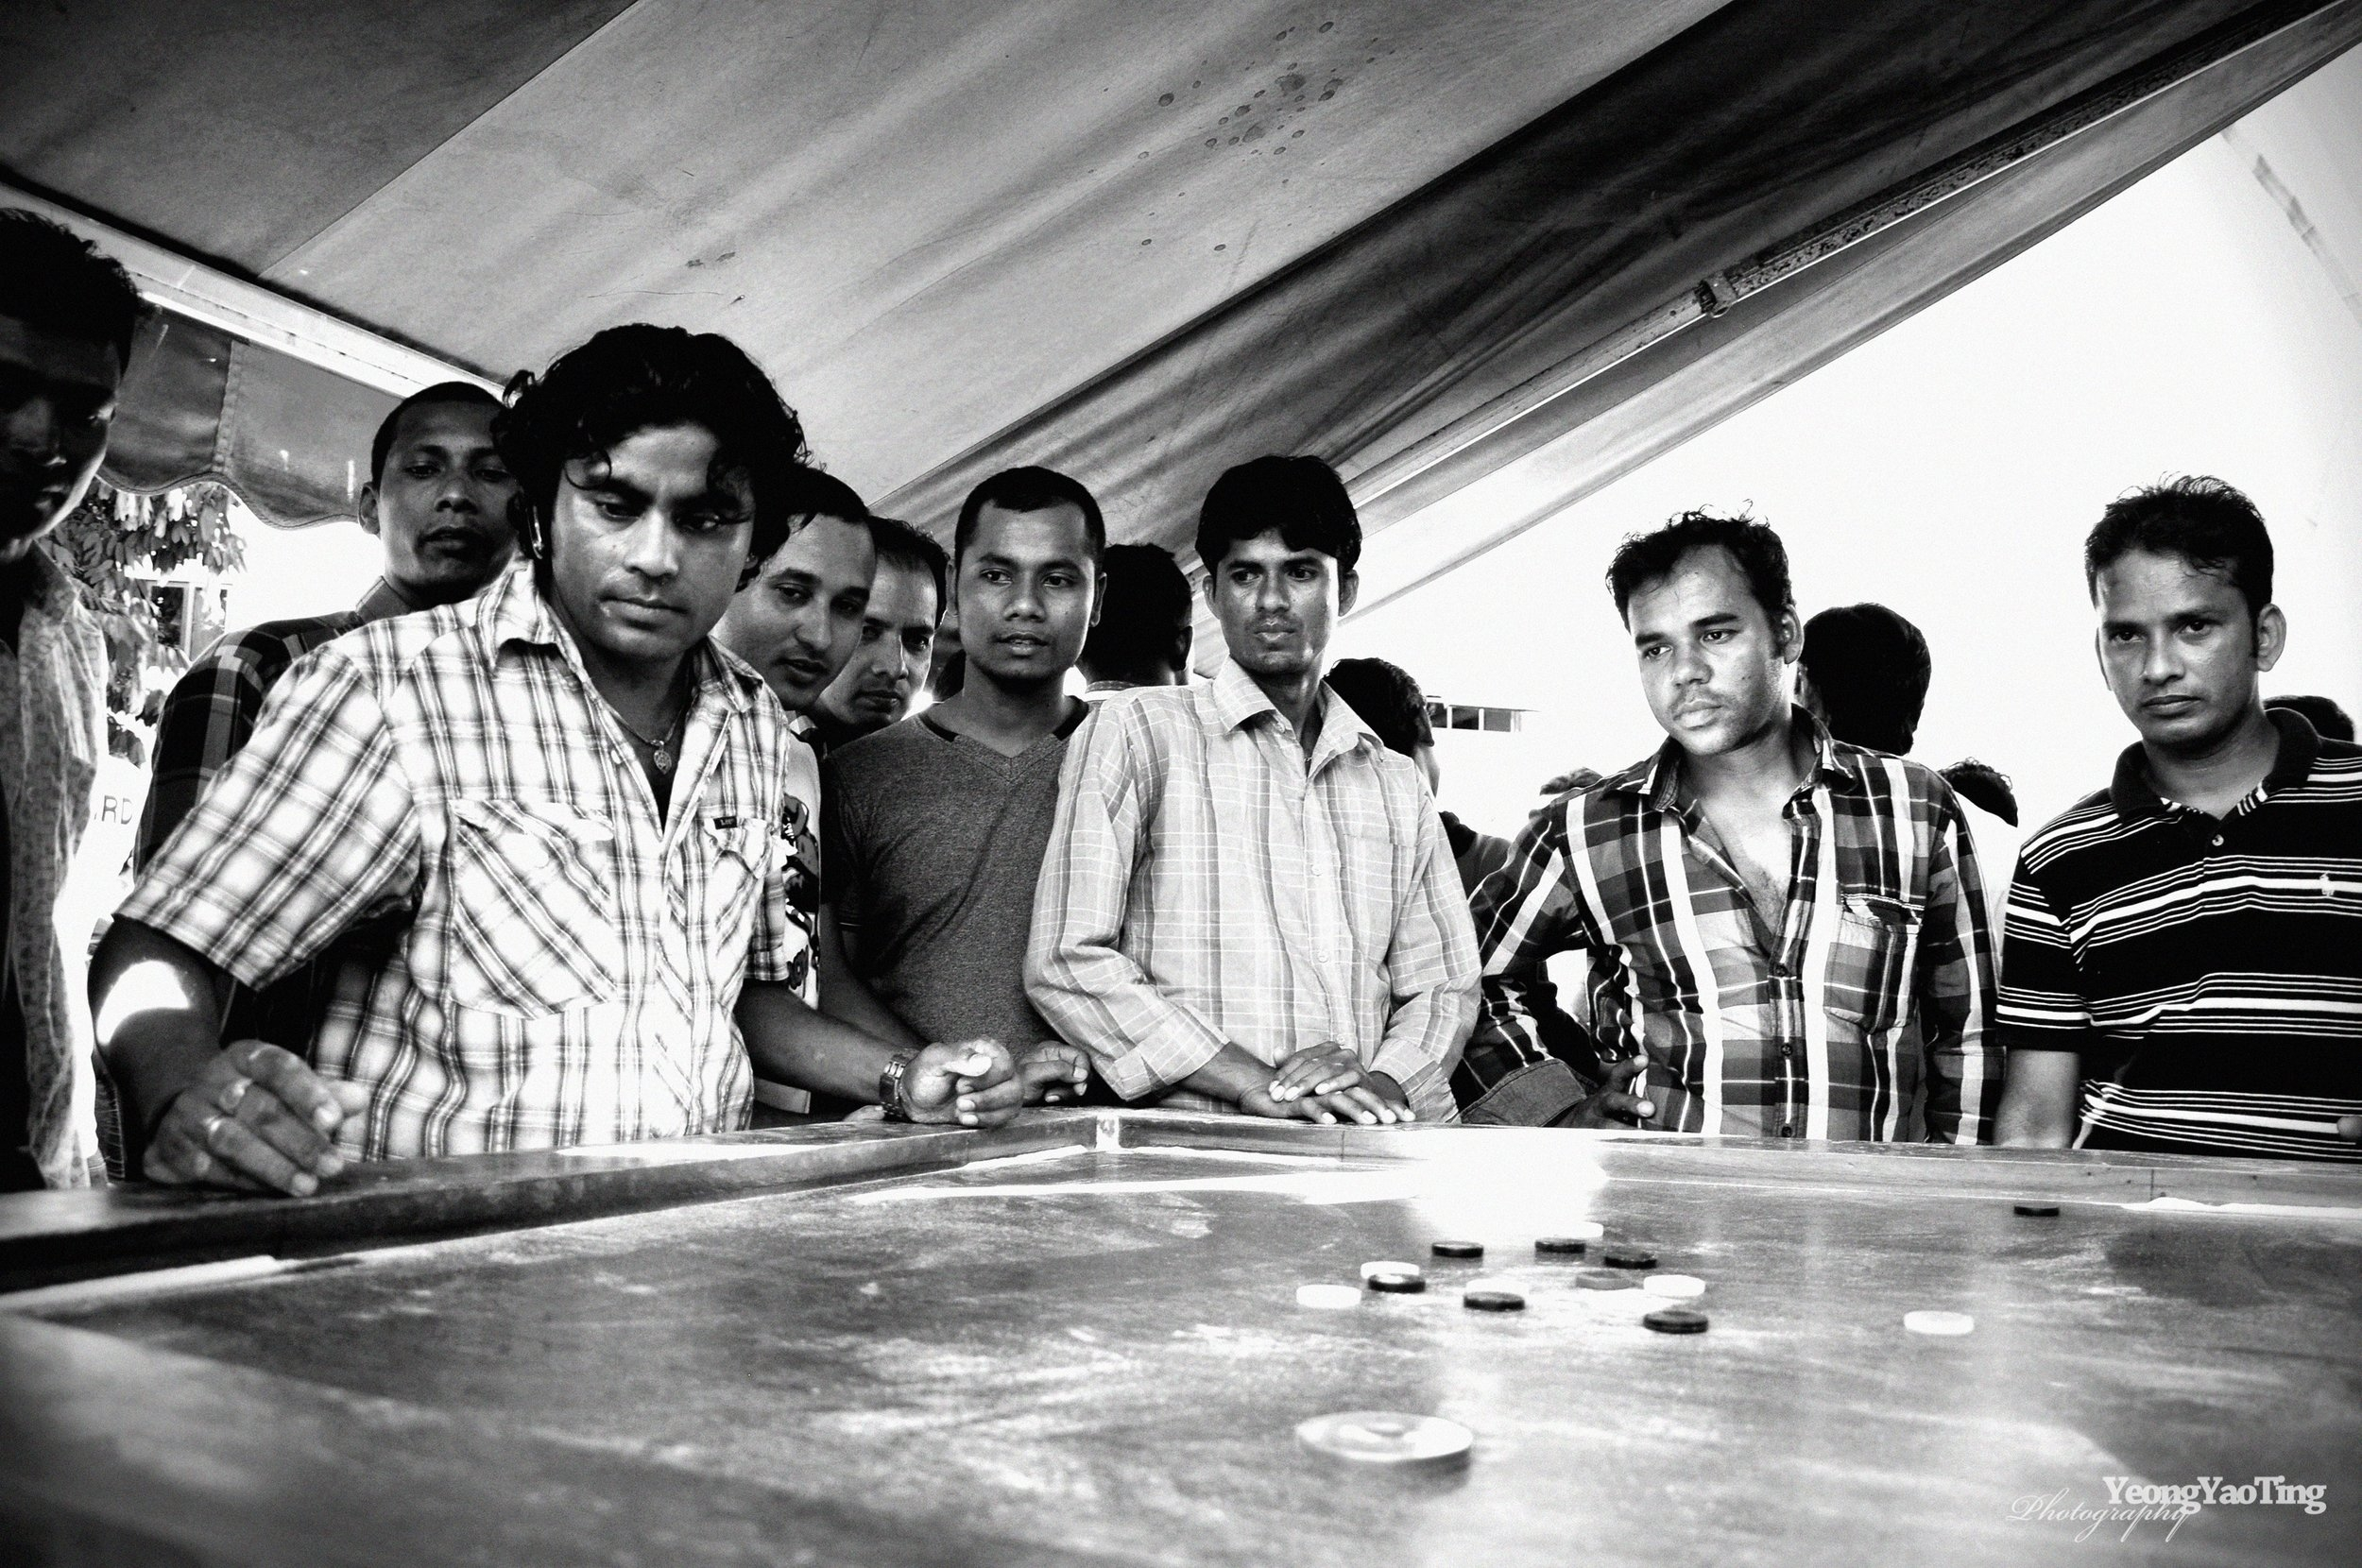 A Game Of Carrom